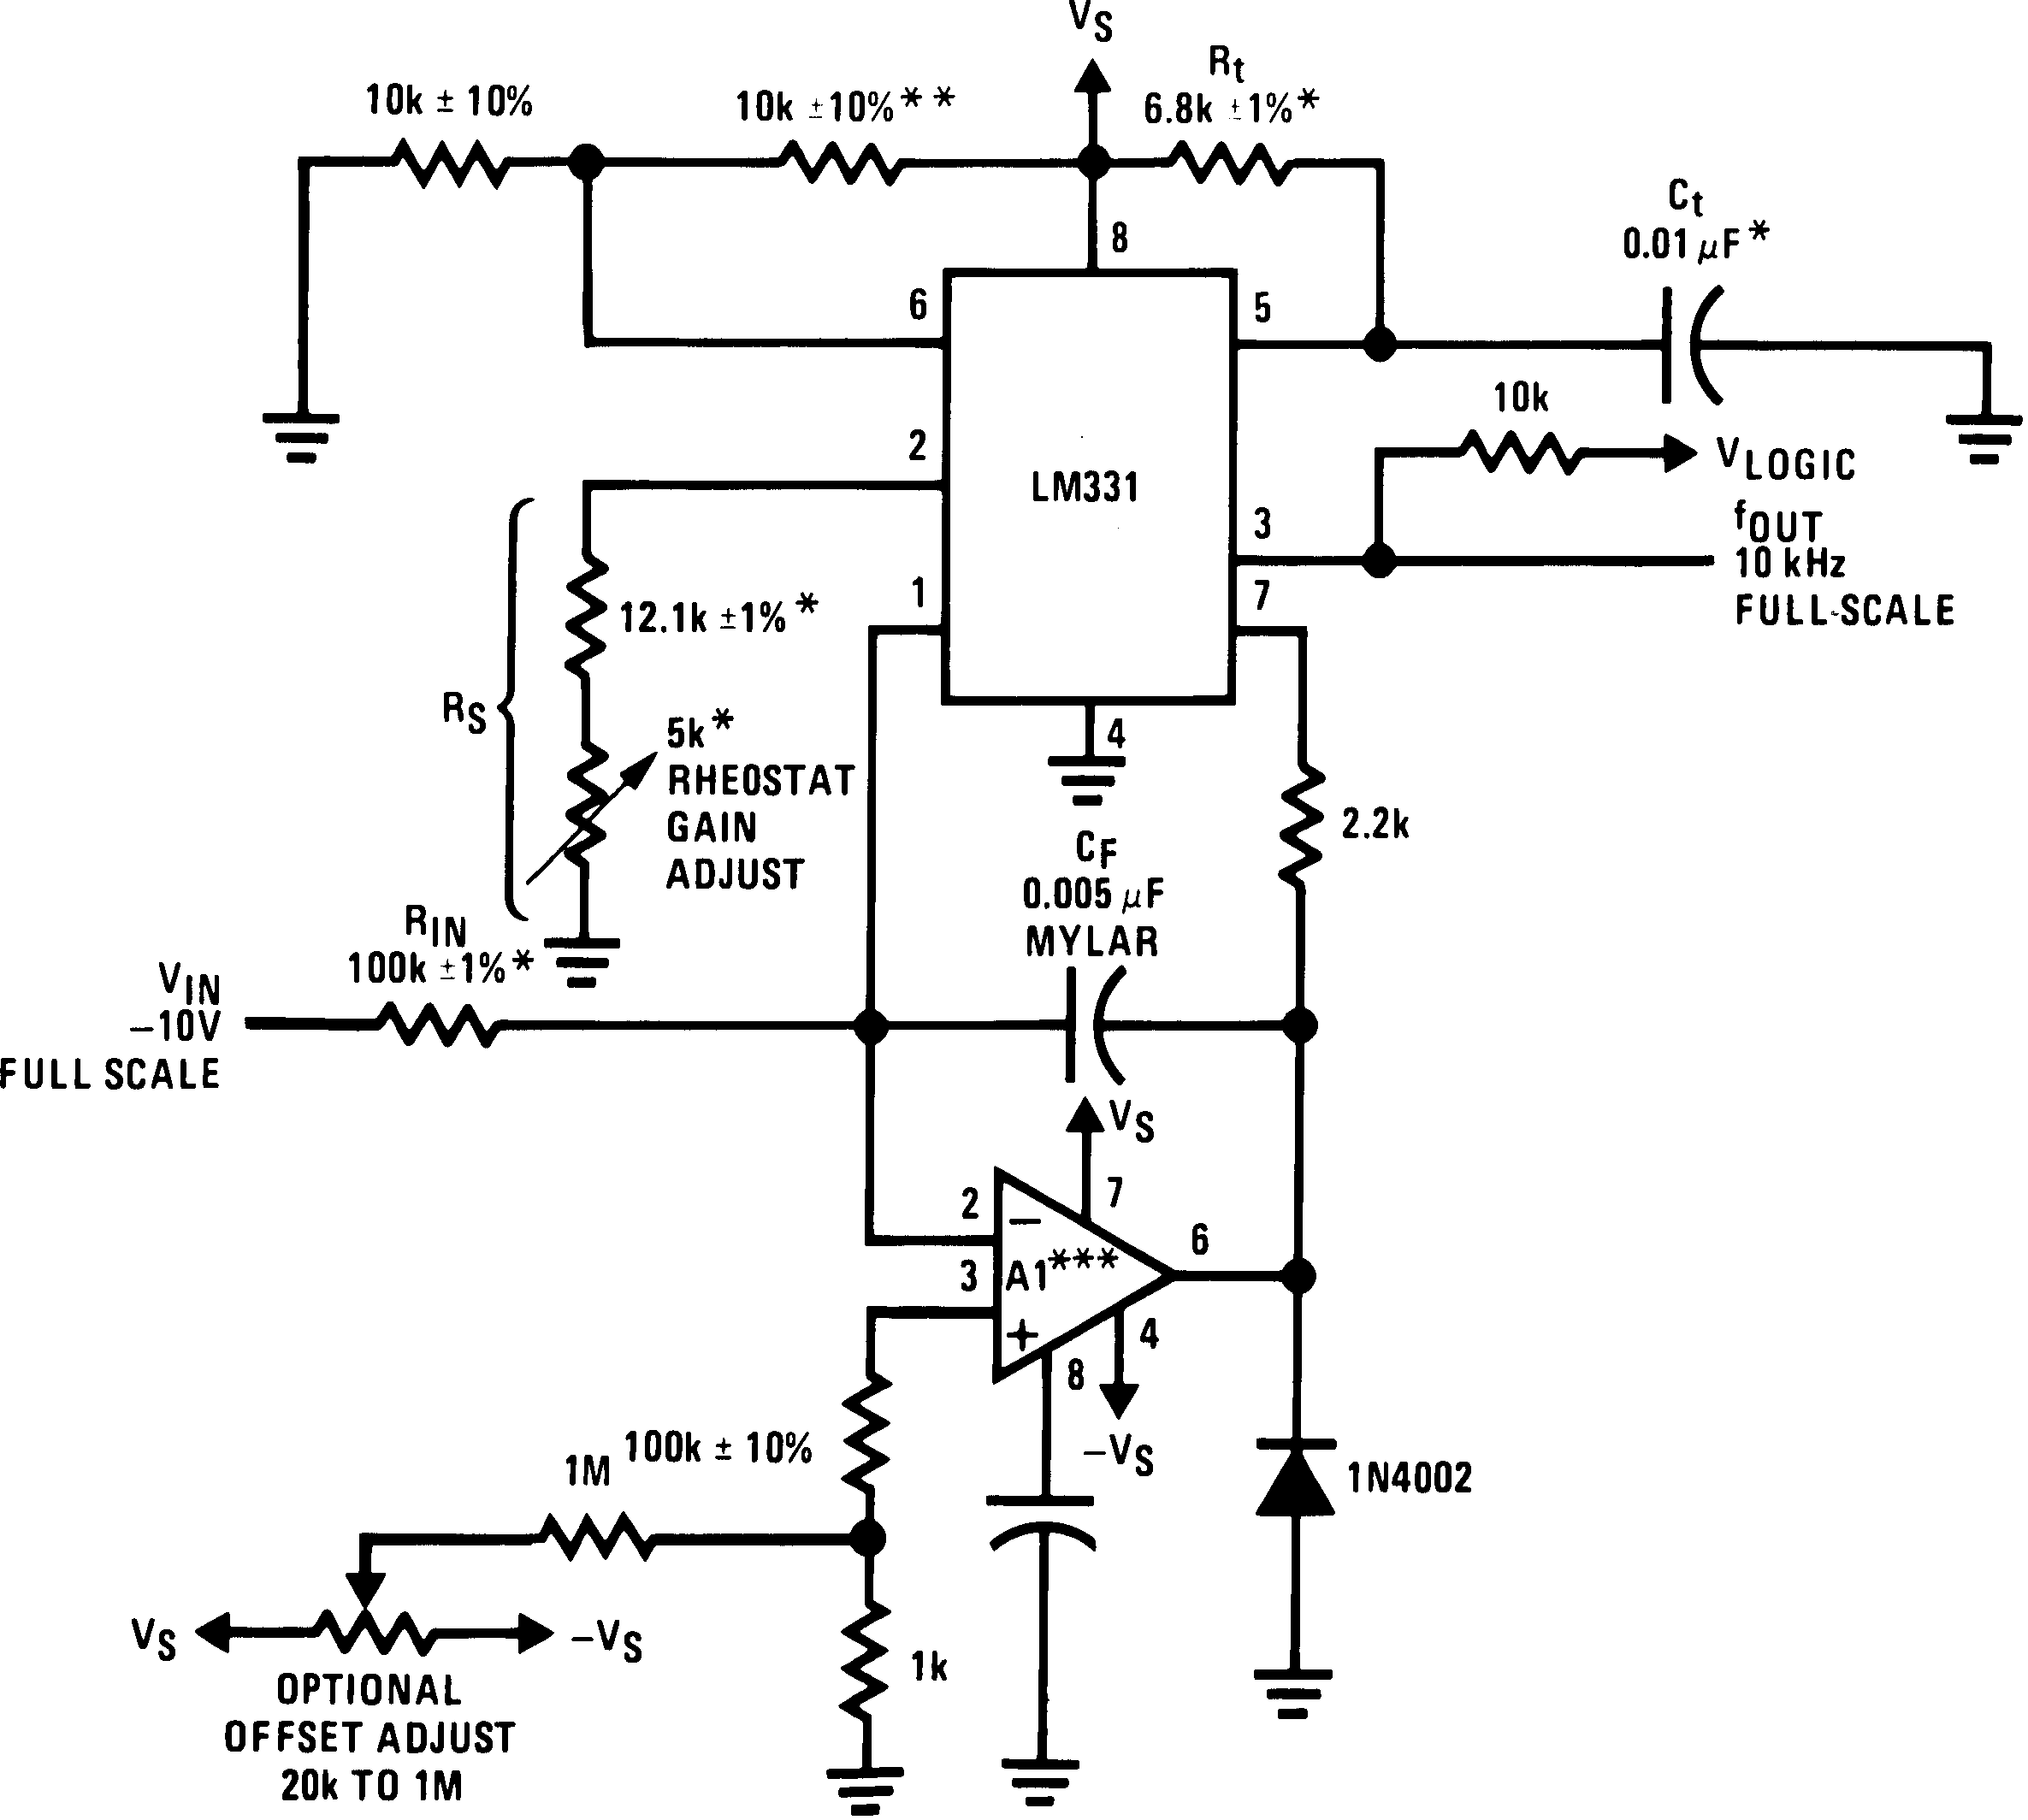 Lm231 Simple Long Timer Circuit Composed Of 555 Amplifiercircuit Lm331 00568005